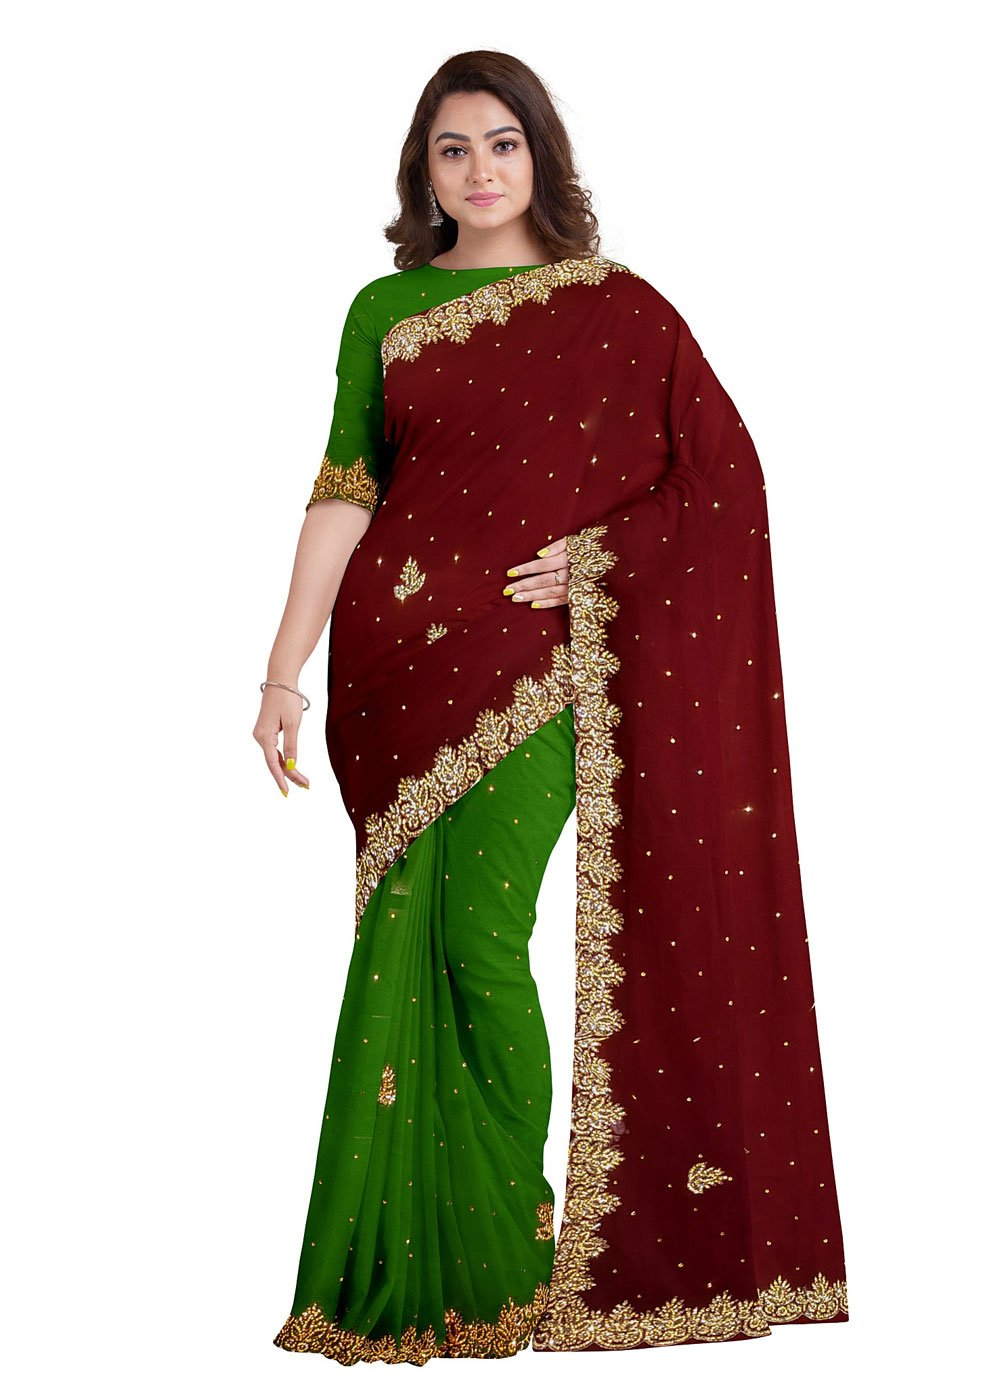 Fancy Fabric Designer Saree in Green and Maroon